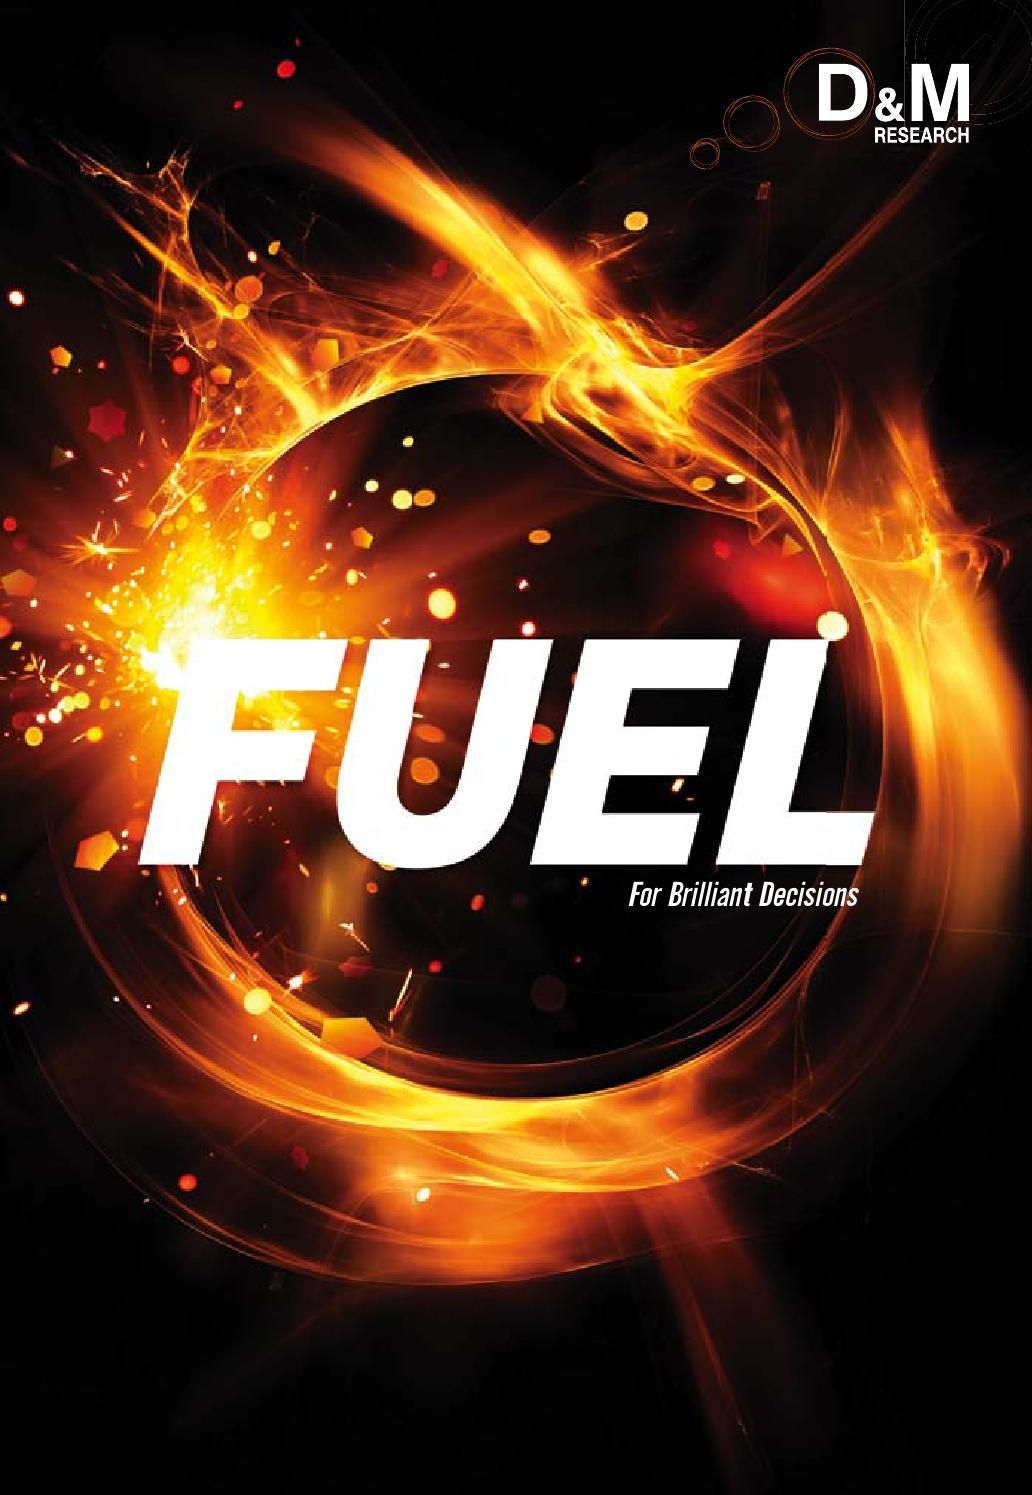 Fuel Magazine 2013  We thought it was about time our friends got to know more about the agency they've been trusting for so many years.   And so we are proud to launch 'Fuel', a magazine dedicated to D&M's take on the world of Marketing and Social Research - profiling our work, clients, and team in addition to interesting  findings and news.Fuel gives real insight to our business, particularly our purpose, research philosophy, values and culture – a lot of which relates to ourbest asset –…